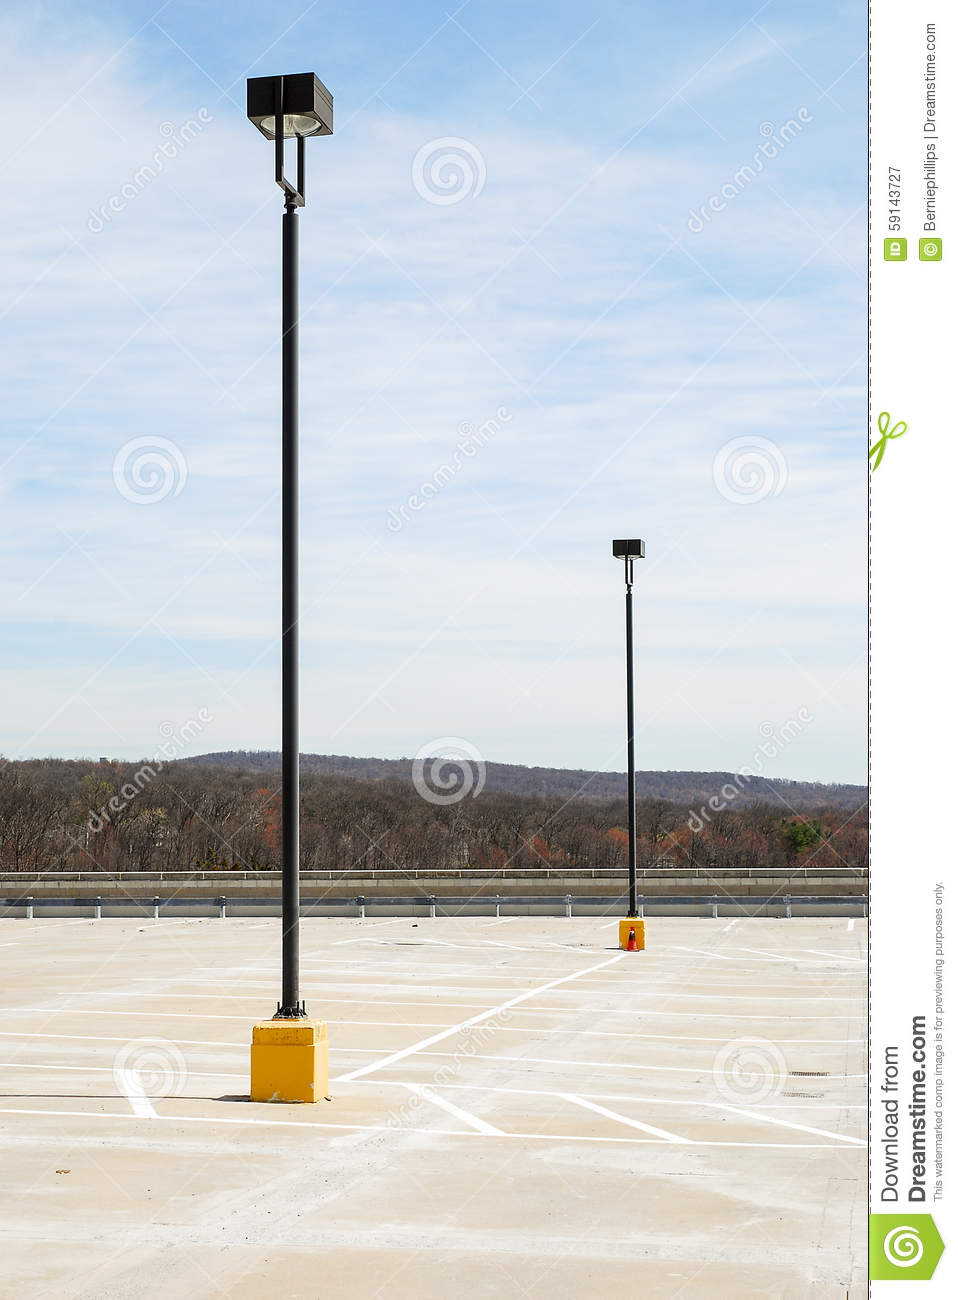 Parking lot lights stock image image of roof lamps 59143727 parking lot lights aloadofball